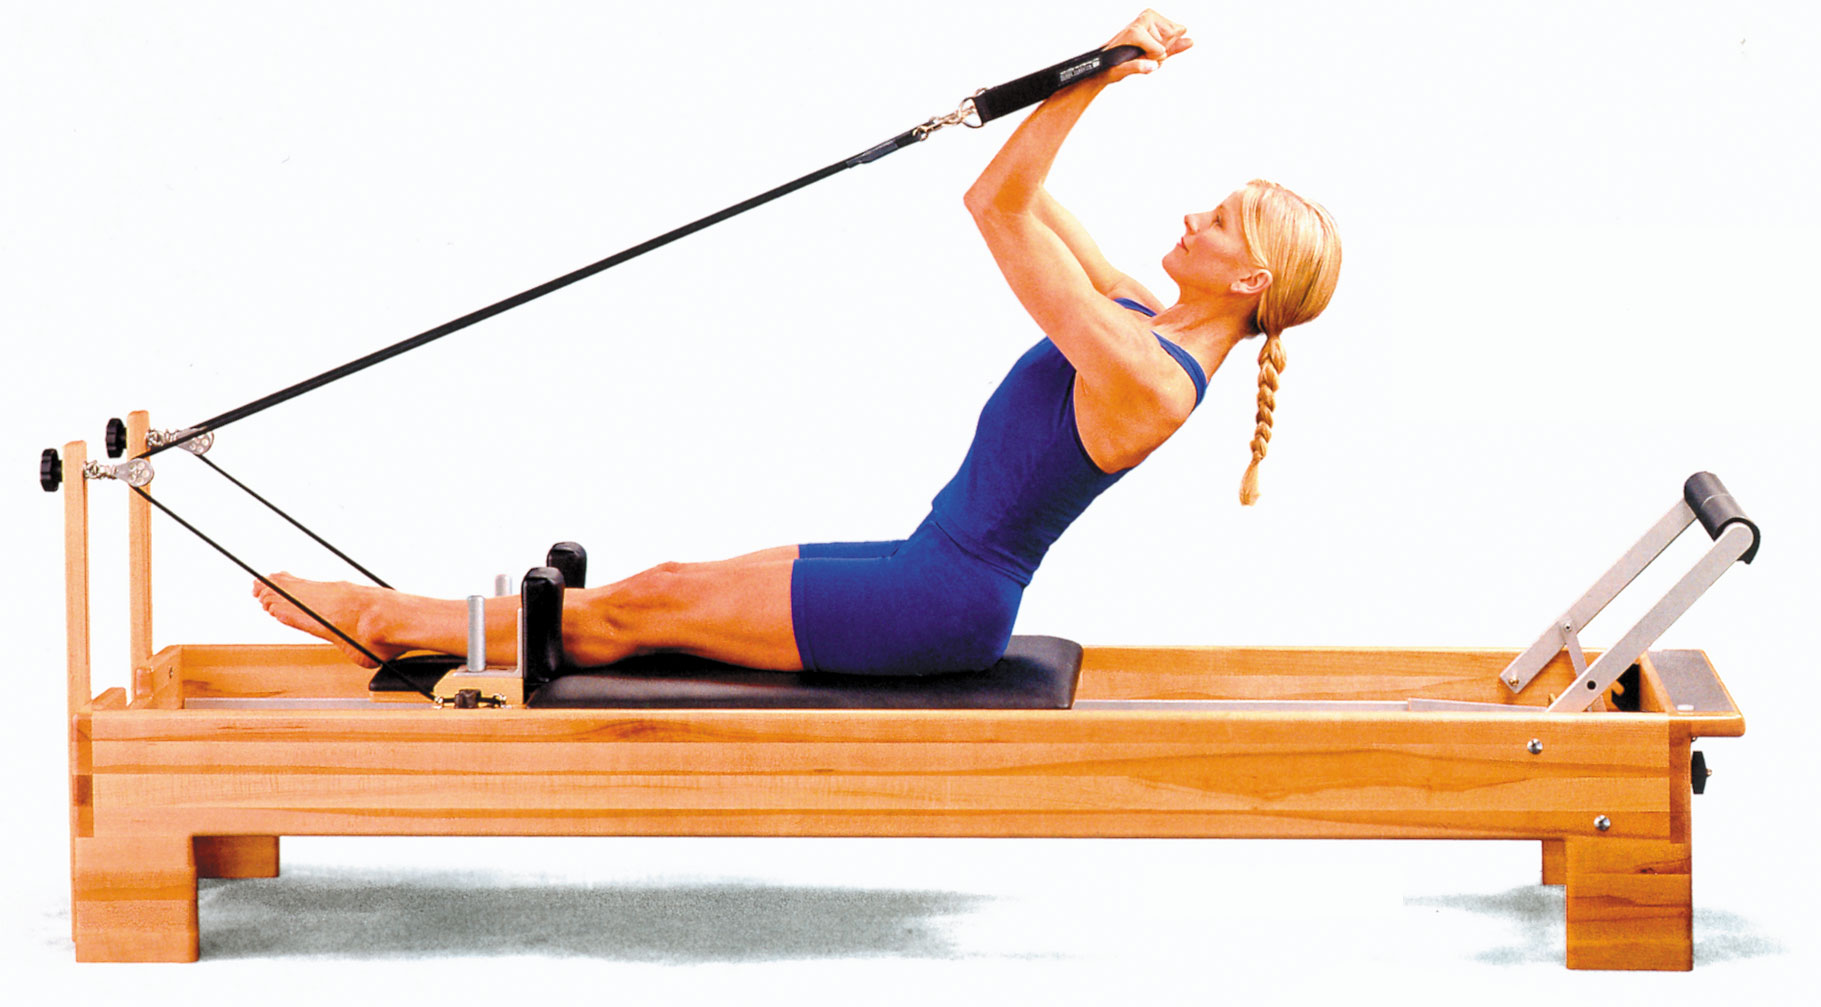 Great pilates exercises using a reformer apparatus.